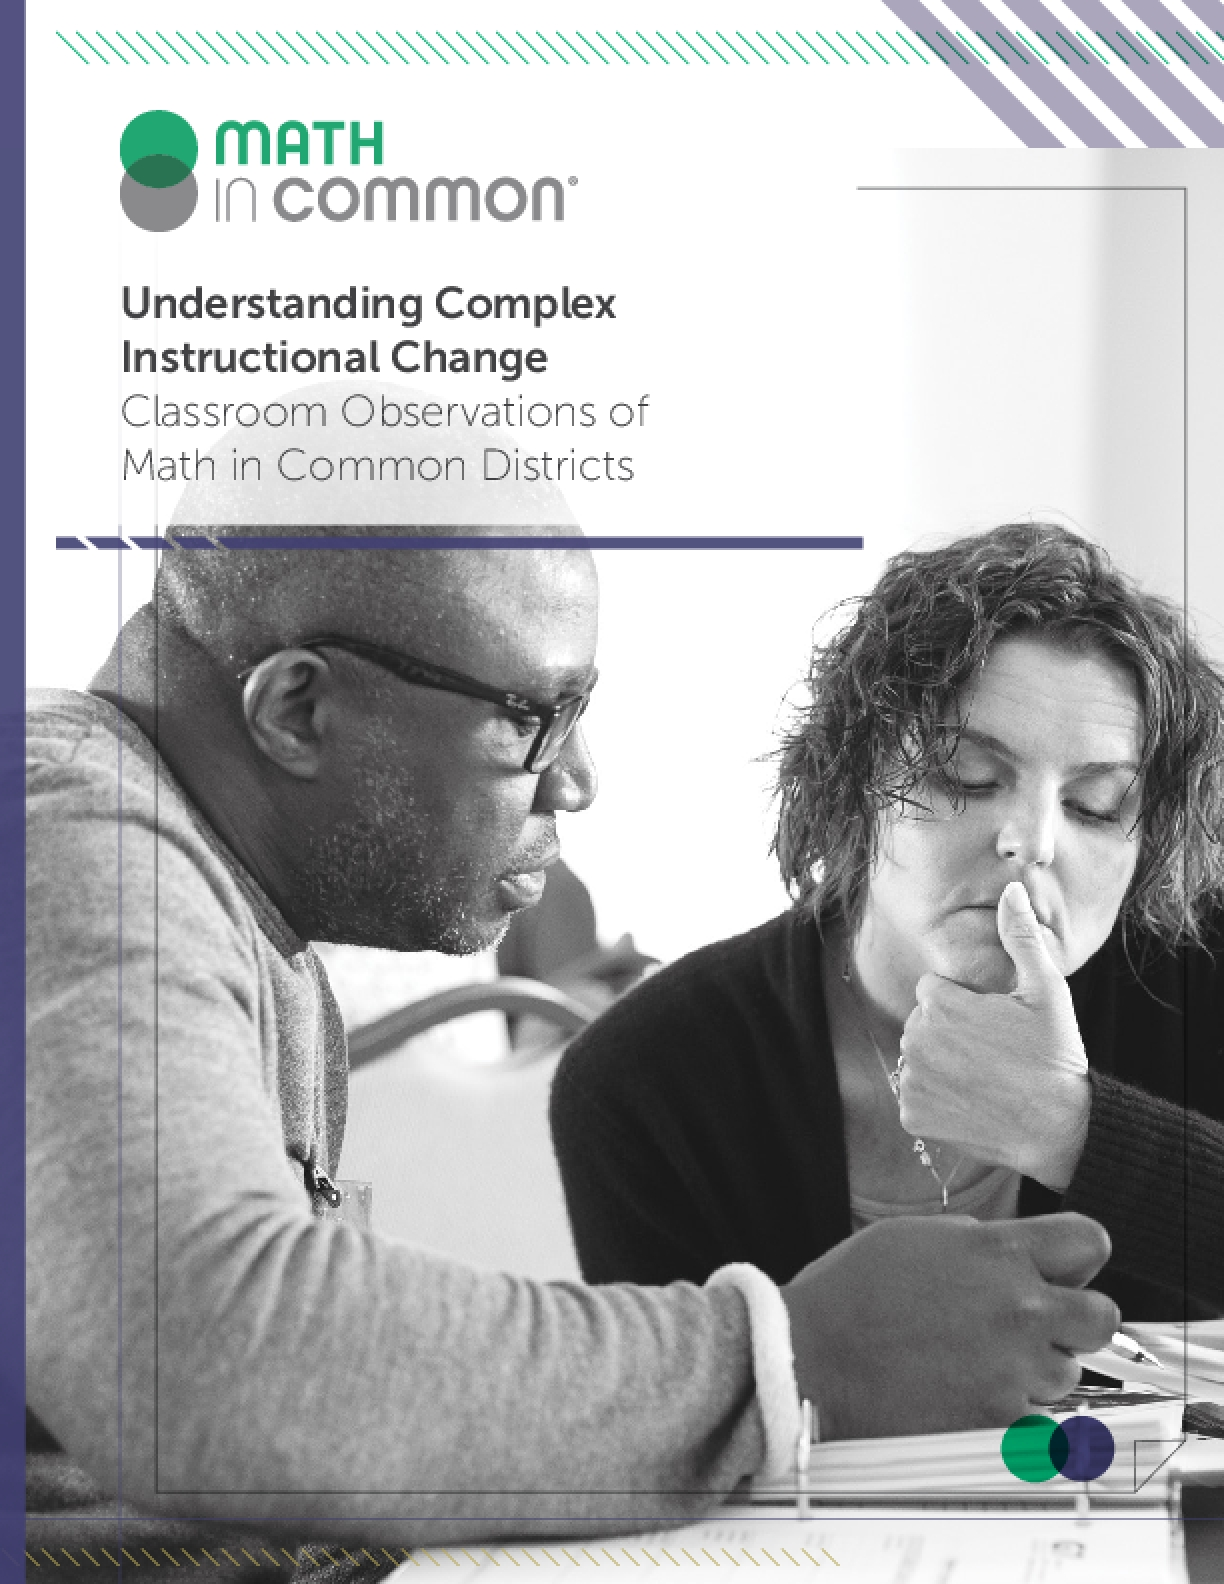 Understanding Complex Instructional Change: Classroom Observations of Math in Common Districts